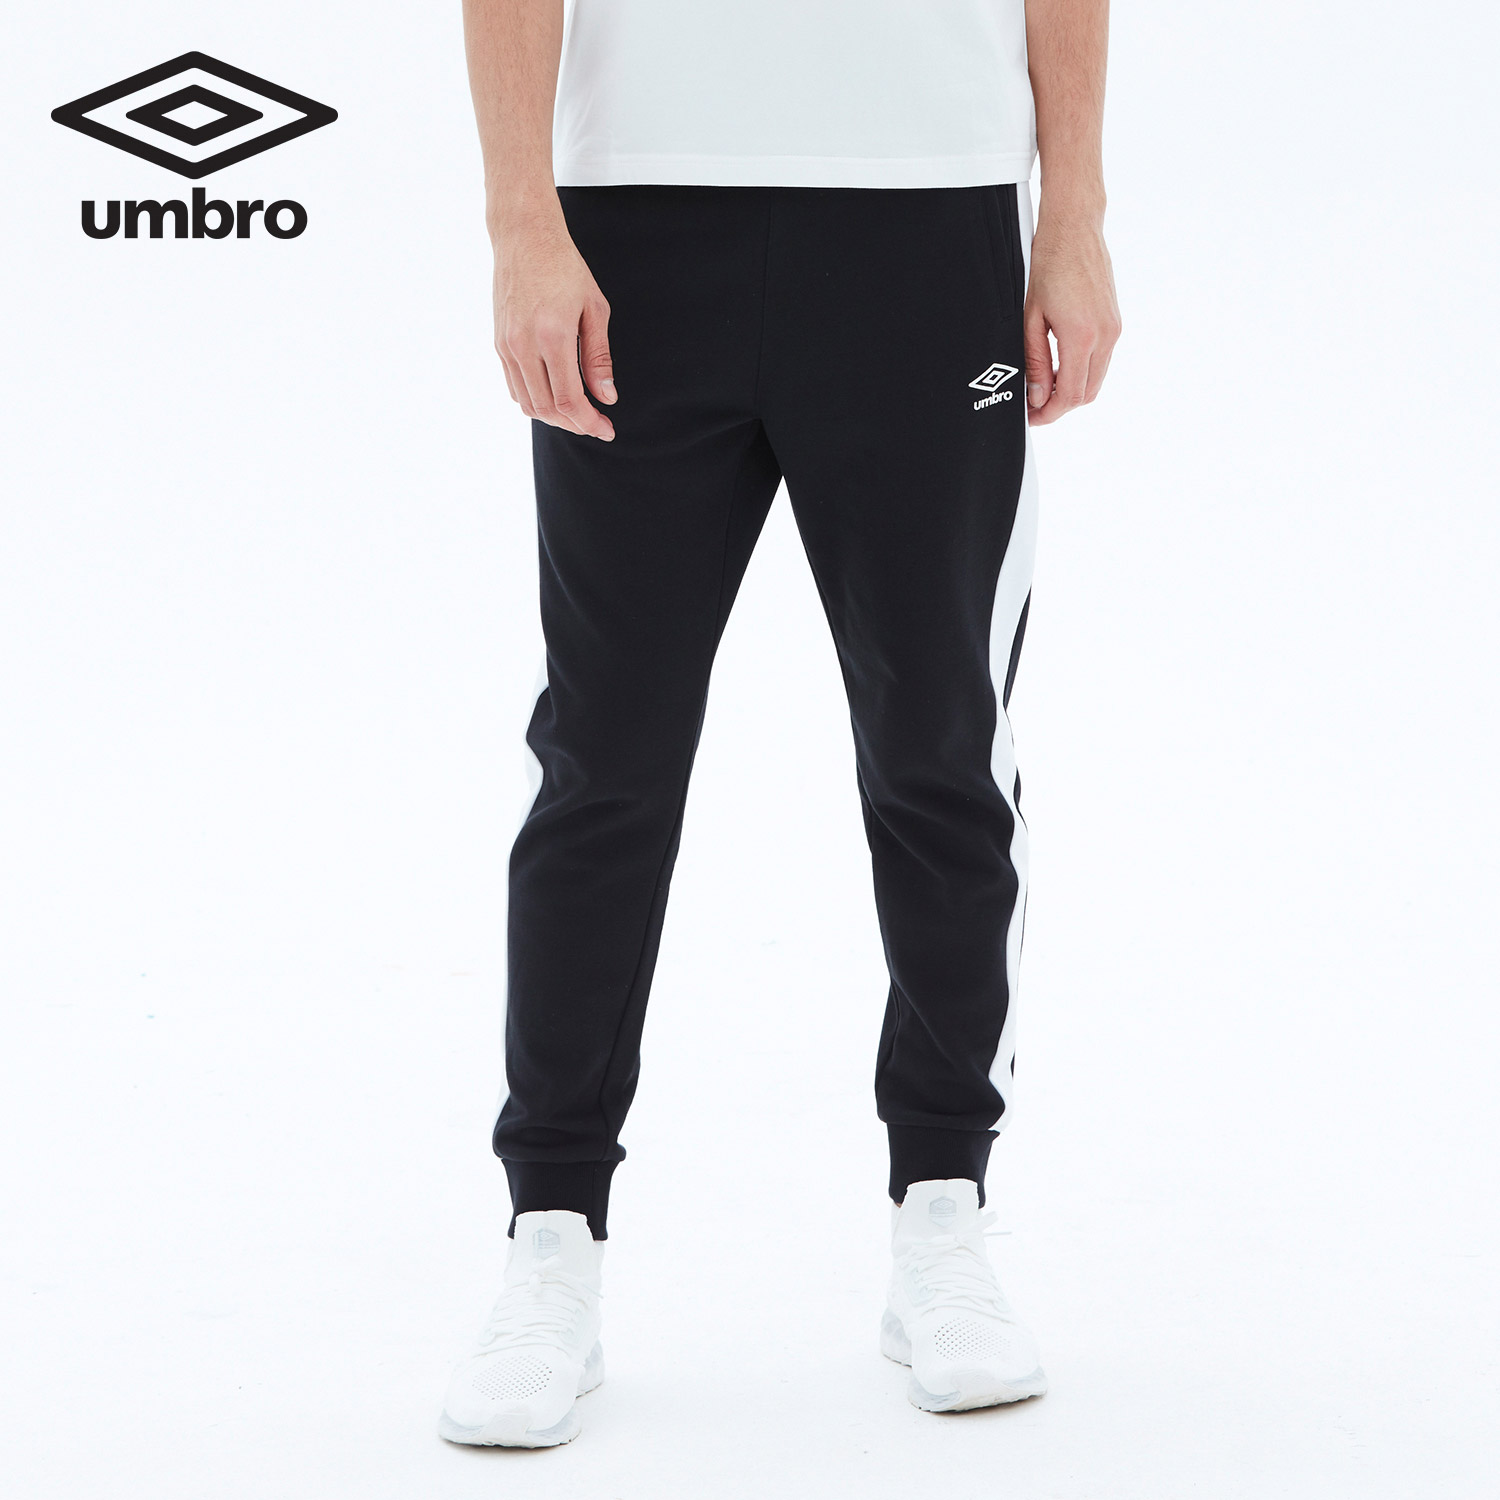 Umbro Sweatpants 2018 New Men Running Knit Sport Pants Cotton 84.3% Polyester Breathable Comfort Trousers UO181AP2301 new 2018 men outdoor running sports pants striped full length leisure sport trousers comfortable breathable sweatpants